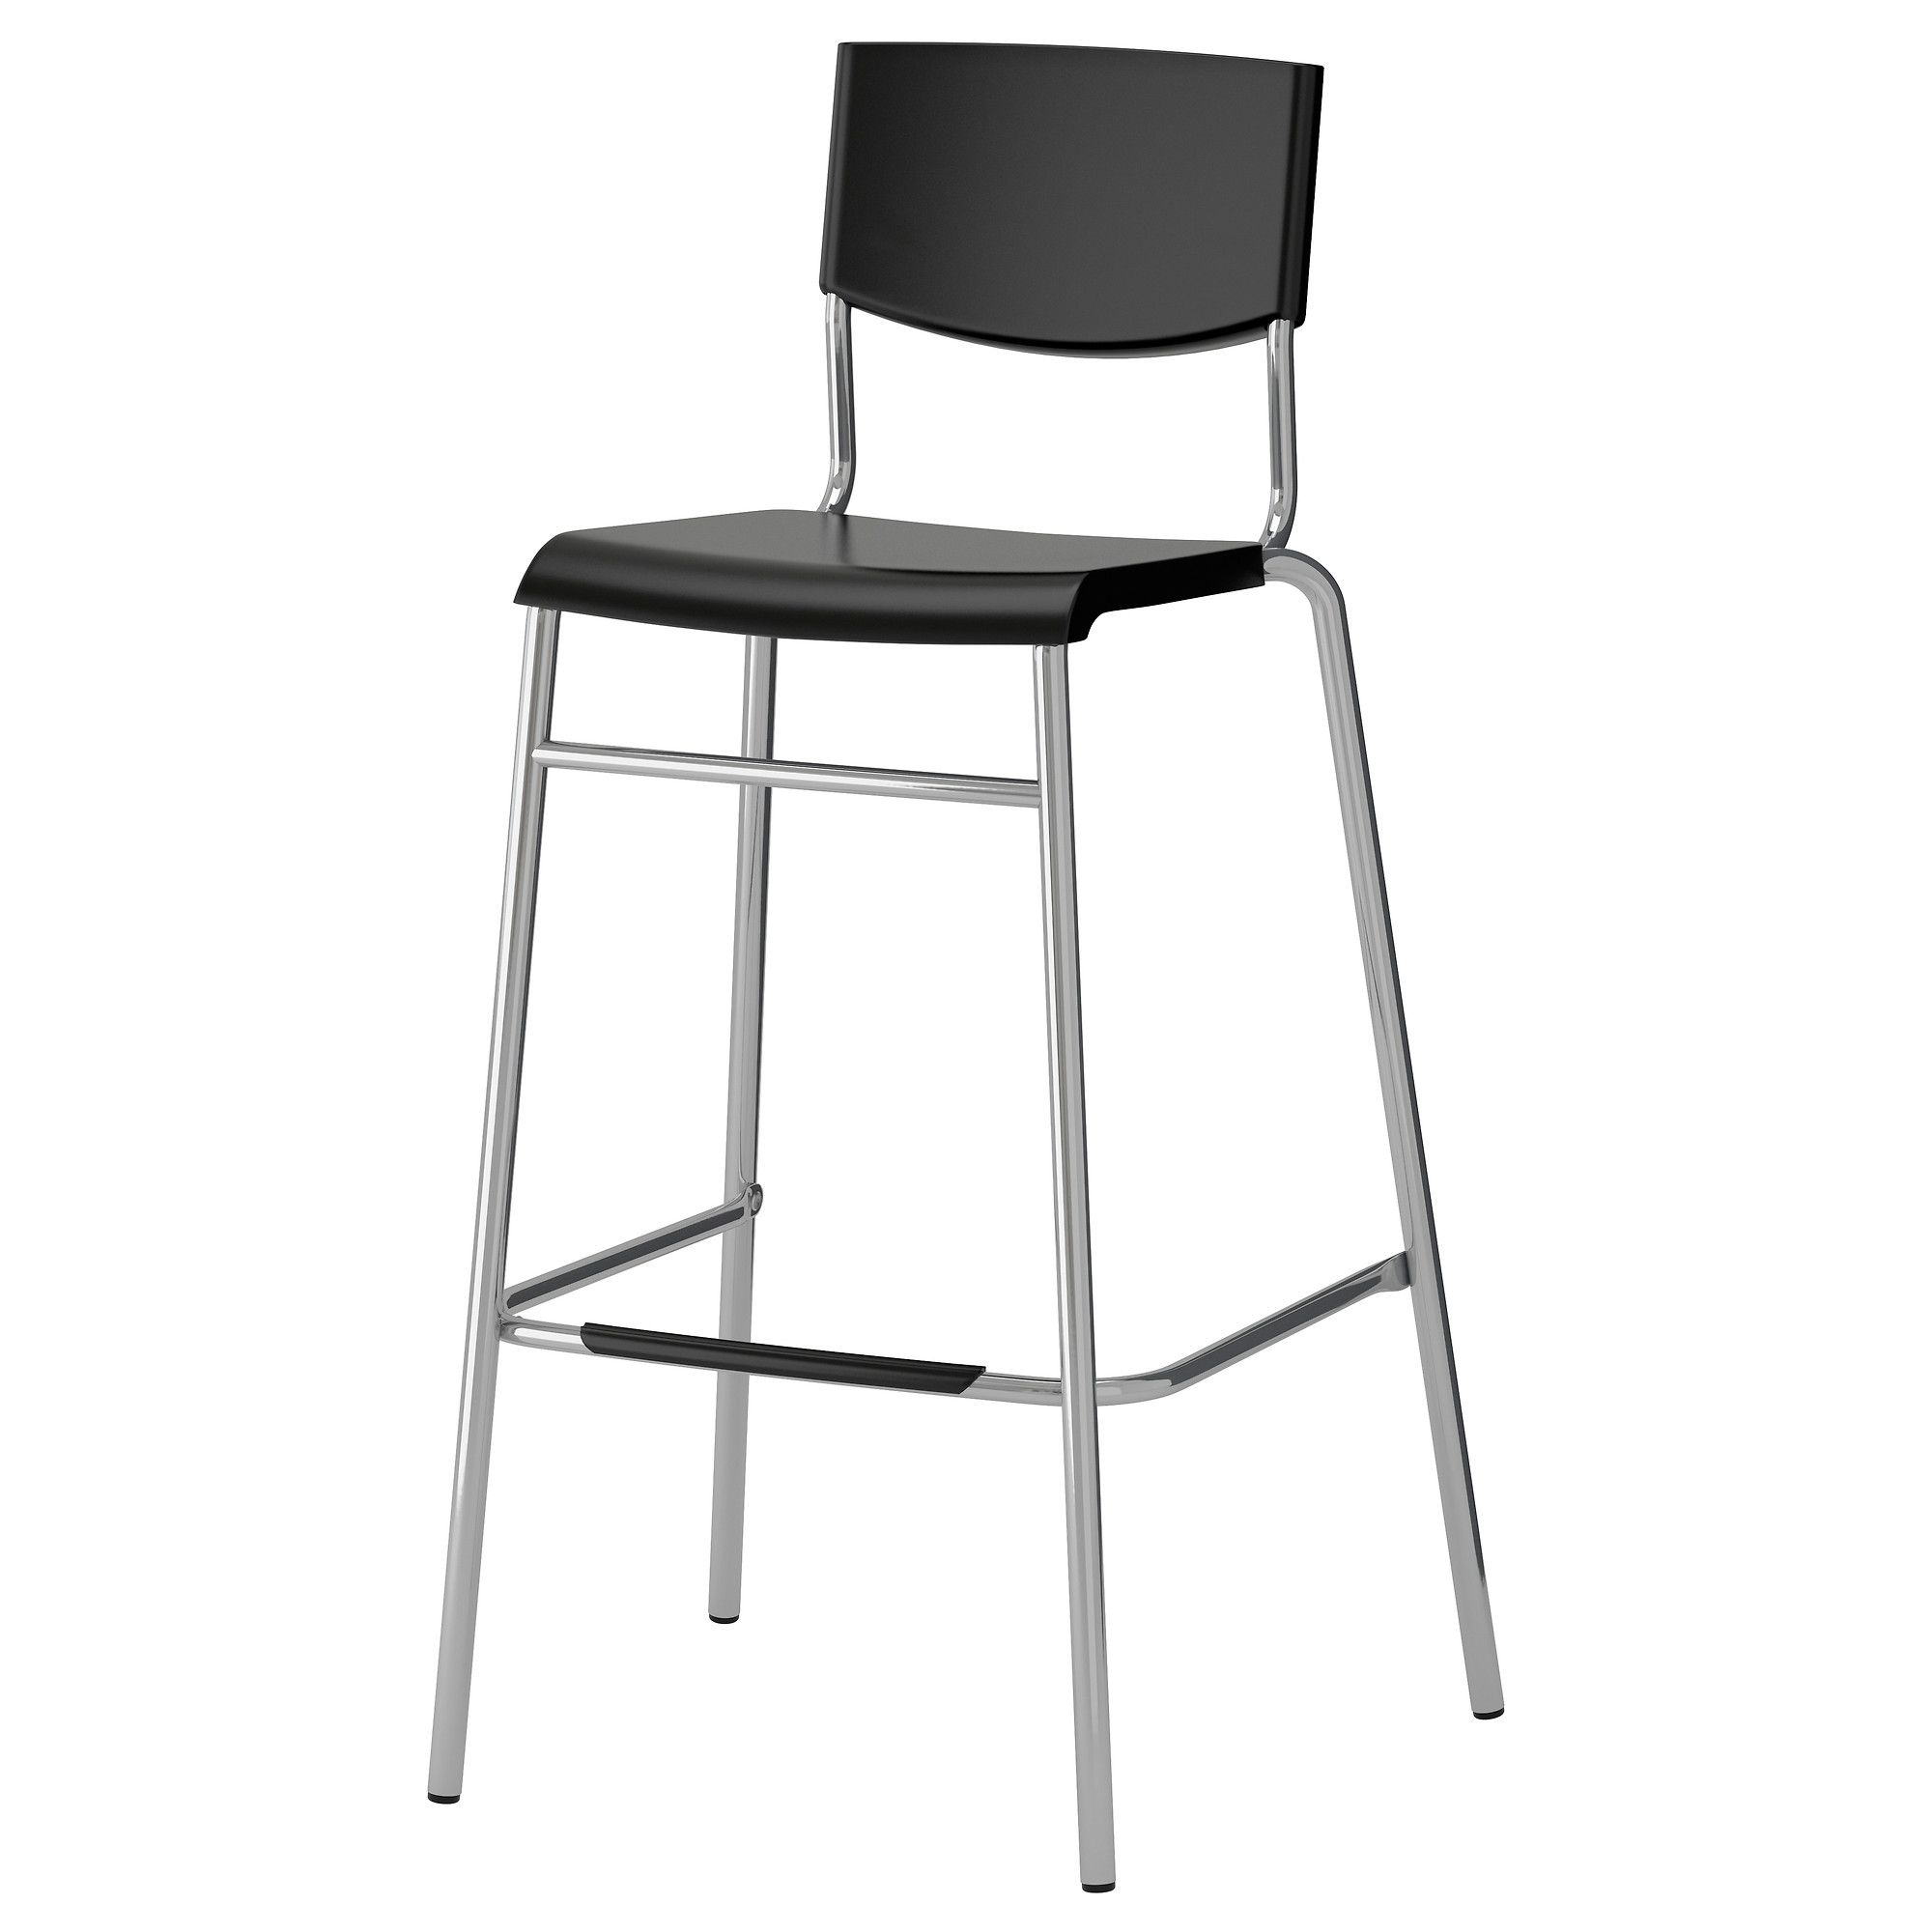 stig bar stool with backrest black silver color home furniture rh pinterest com